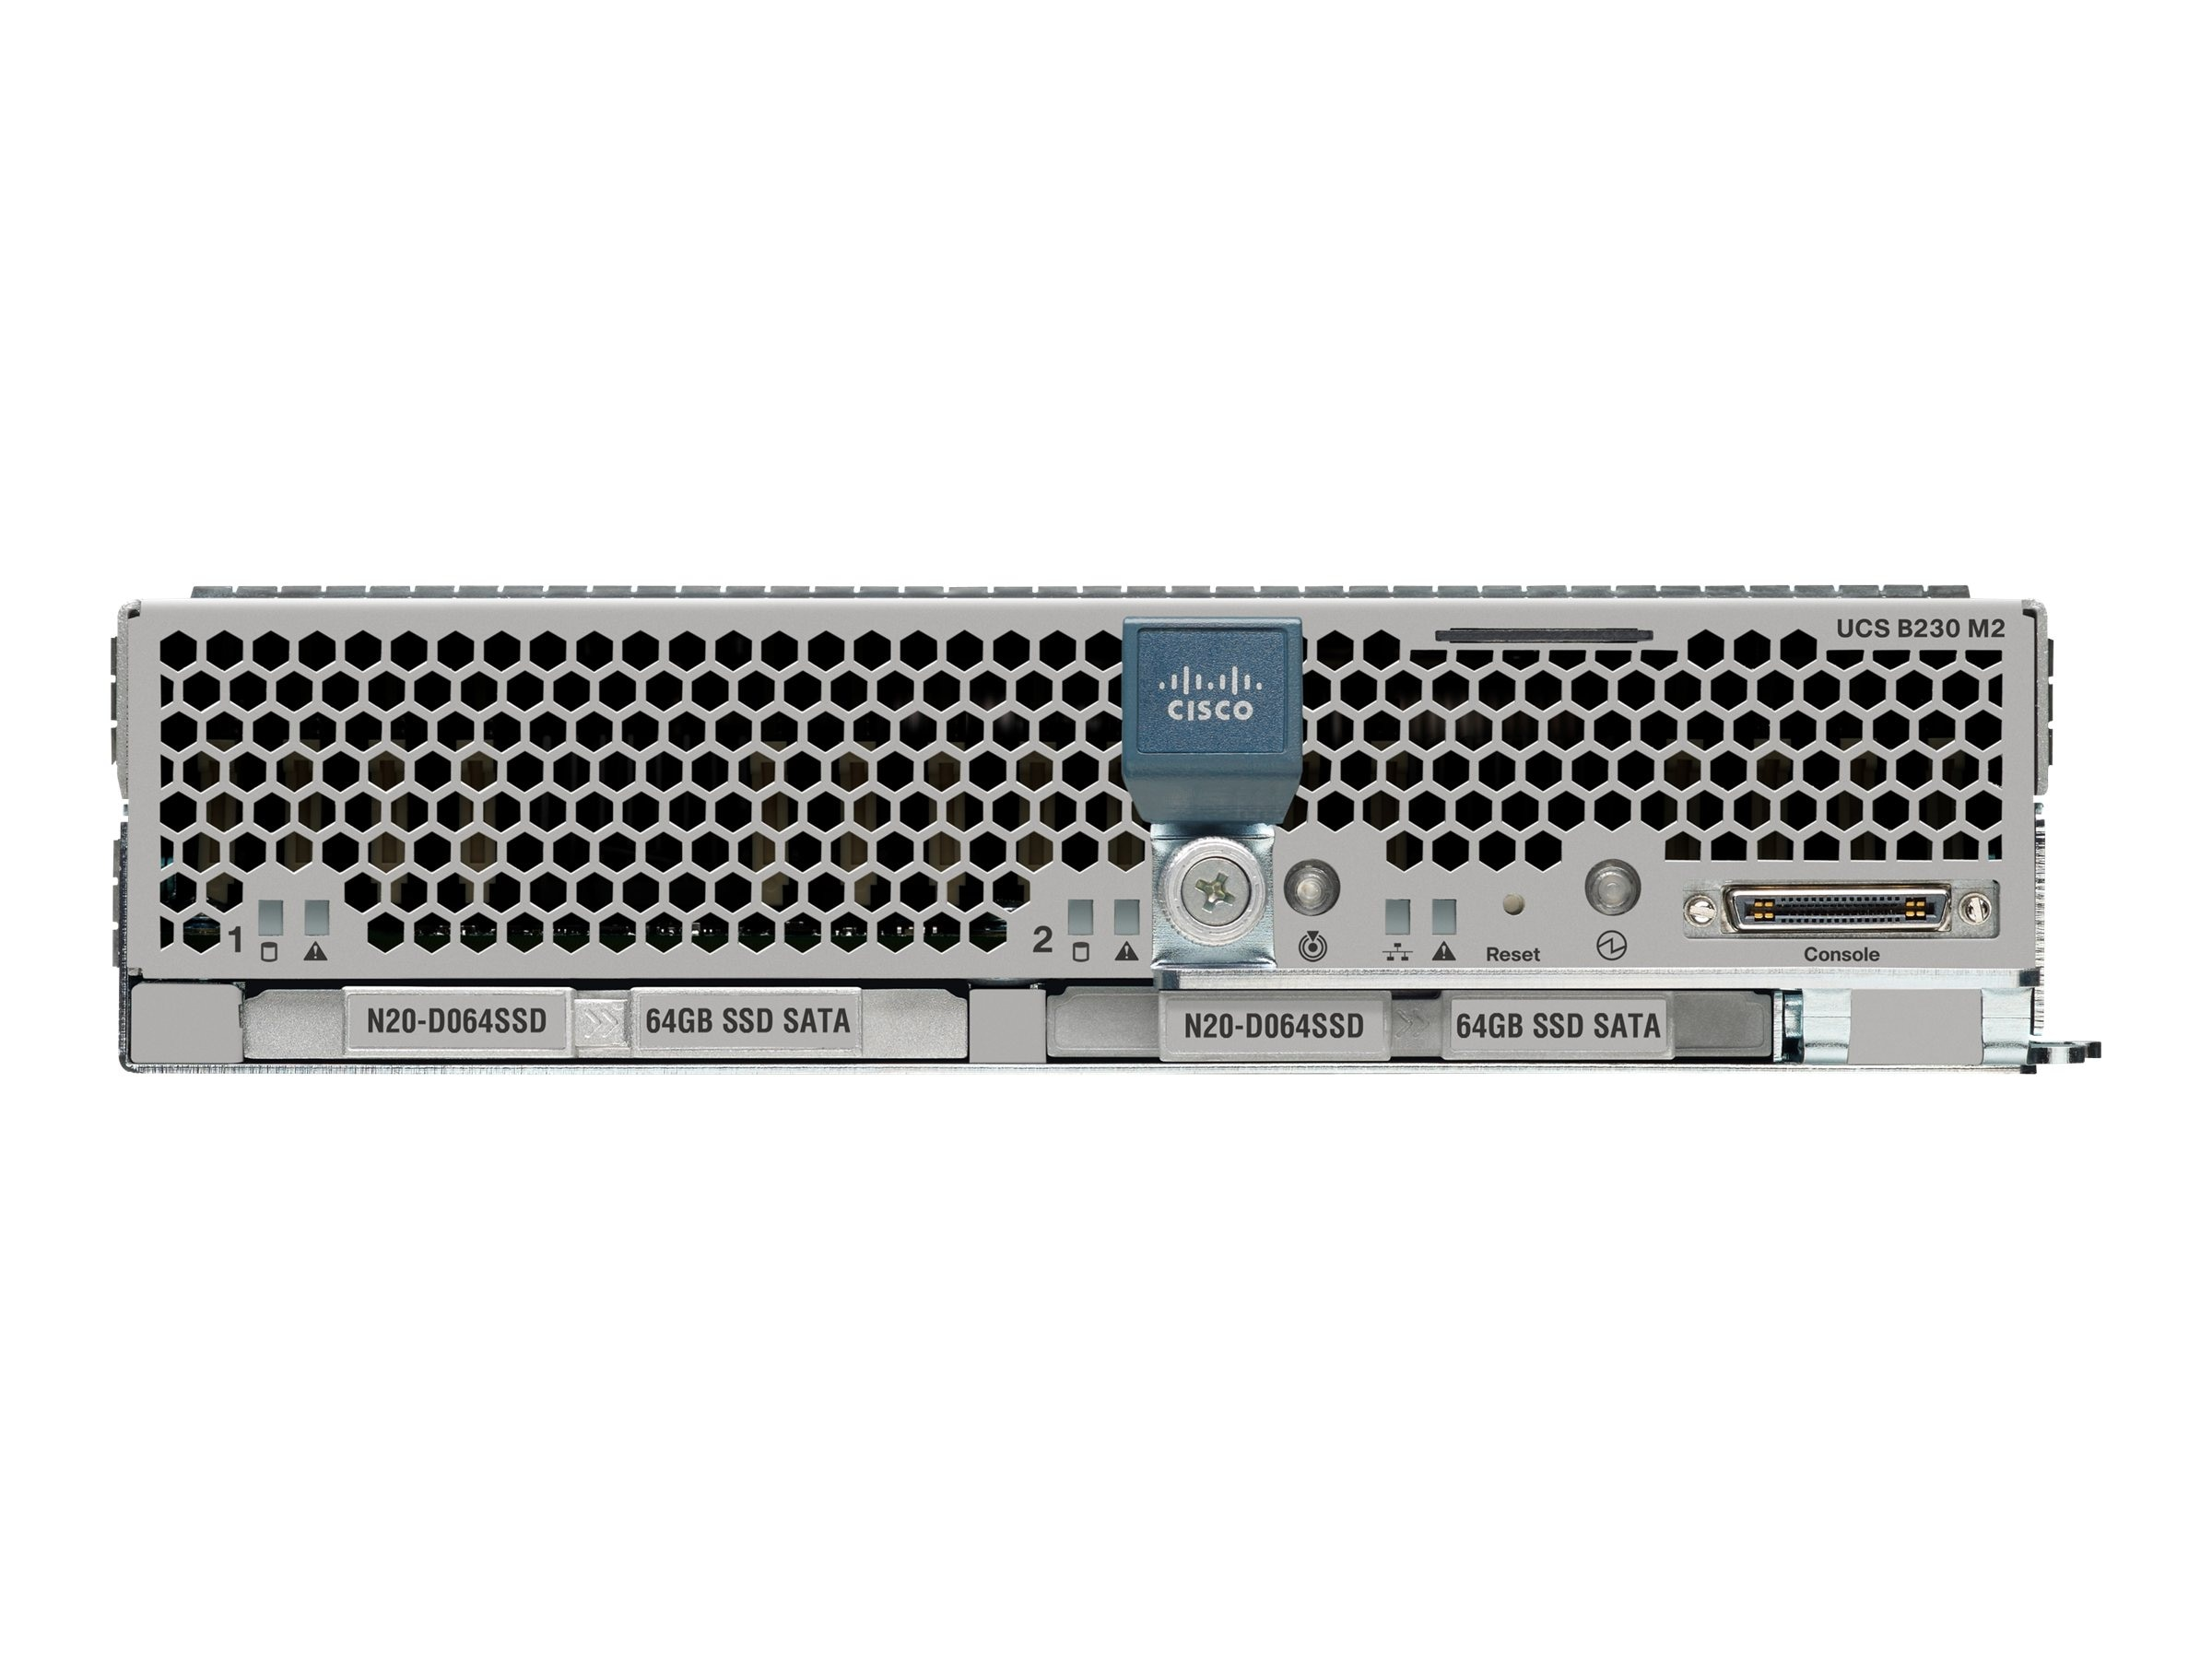 Cisco UCS B230 M2 256GB SmartPlay Expansion Pack (2x) Xeon 10C E7-2870 2.4GHz 256GB VIC1280, UCS-EZ7-B230-EX256, 16466008, Servers - Blade